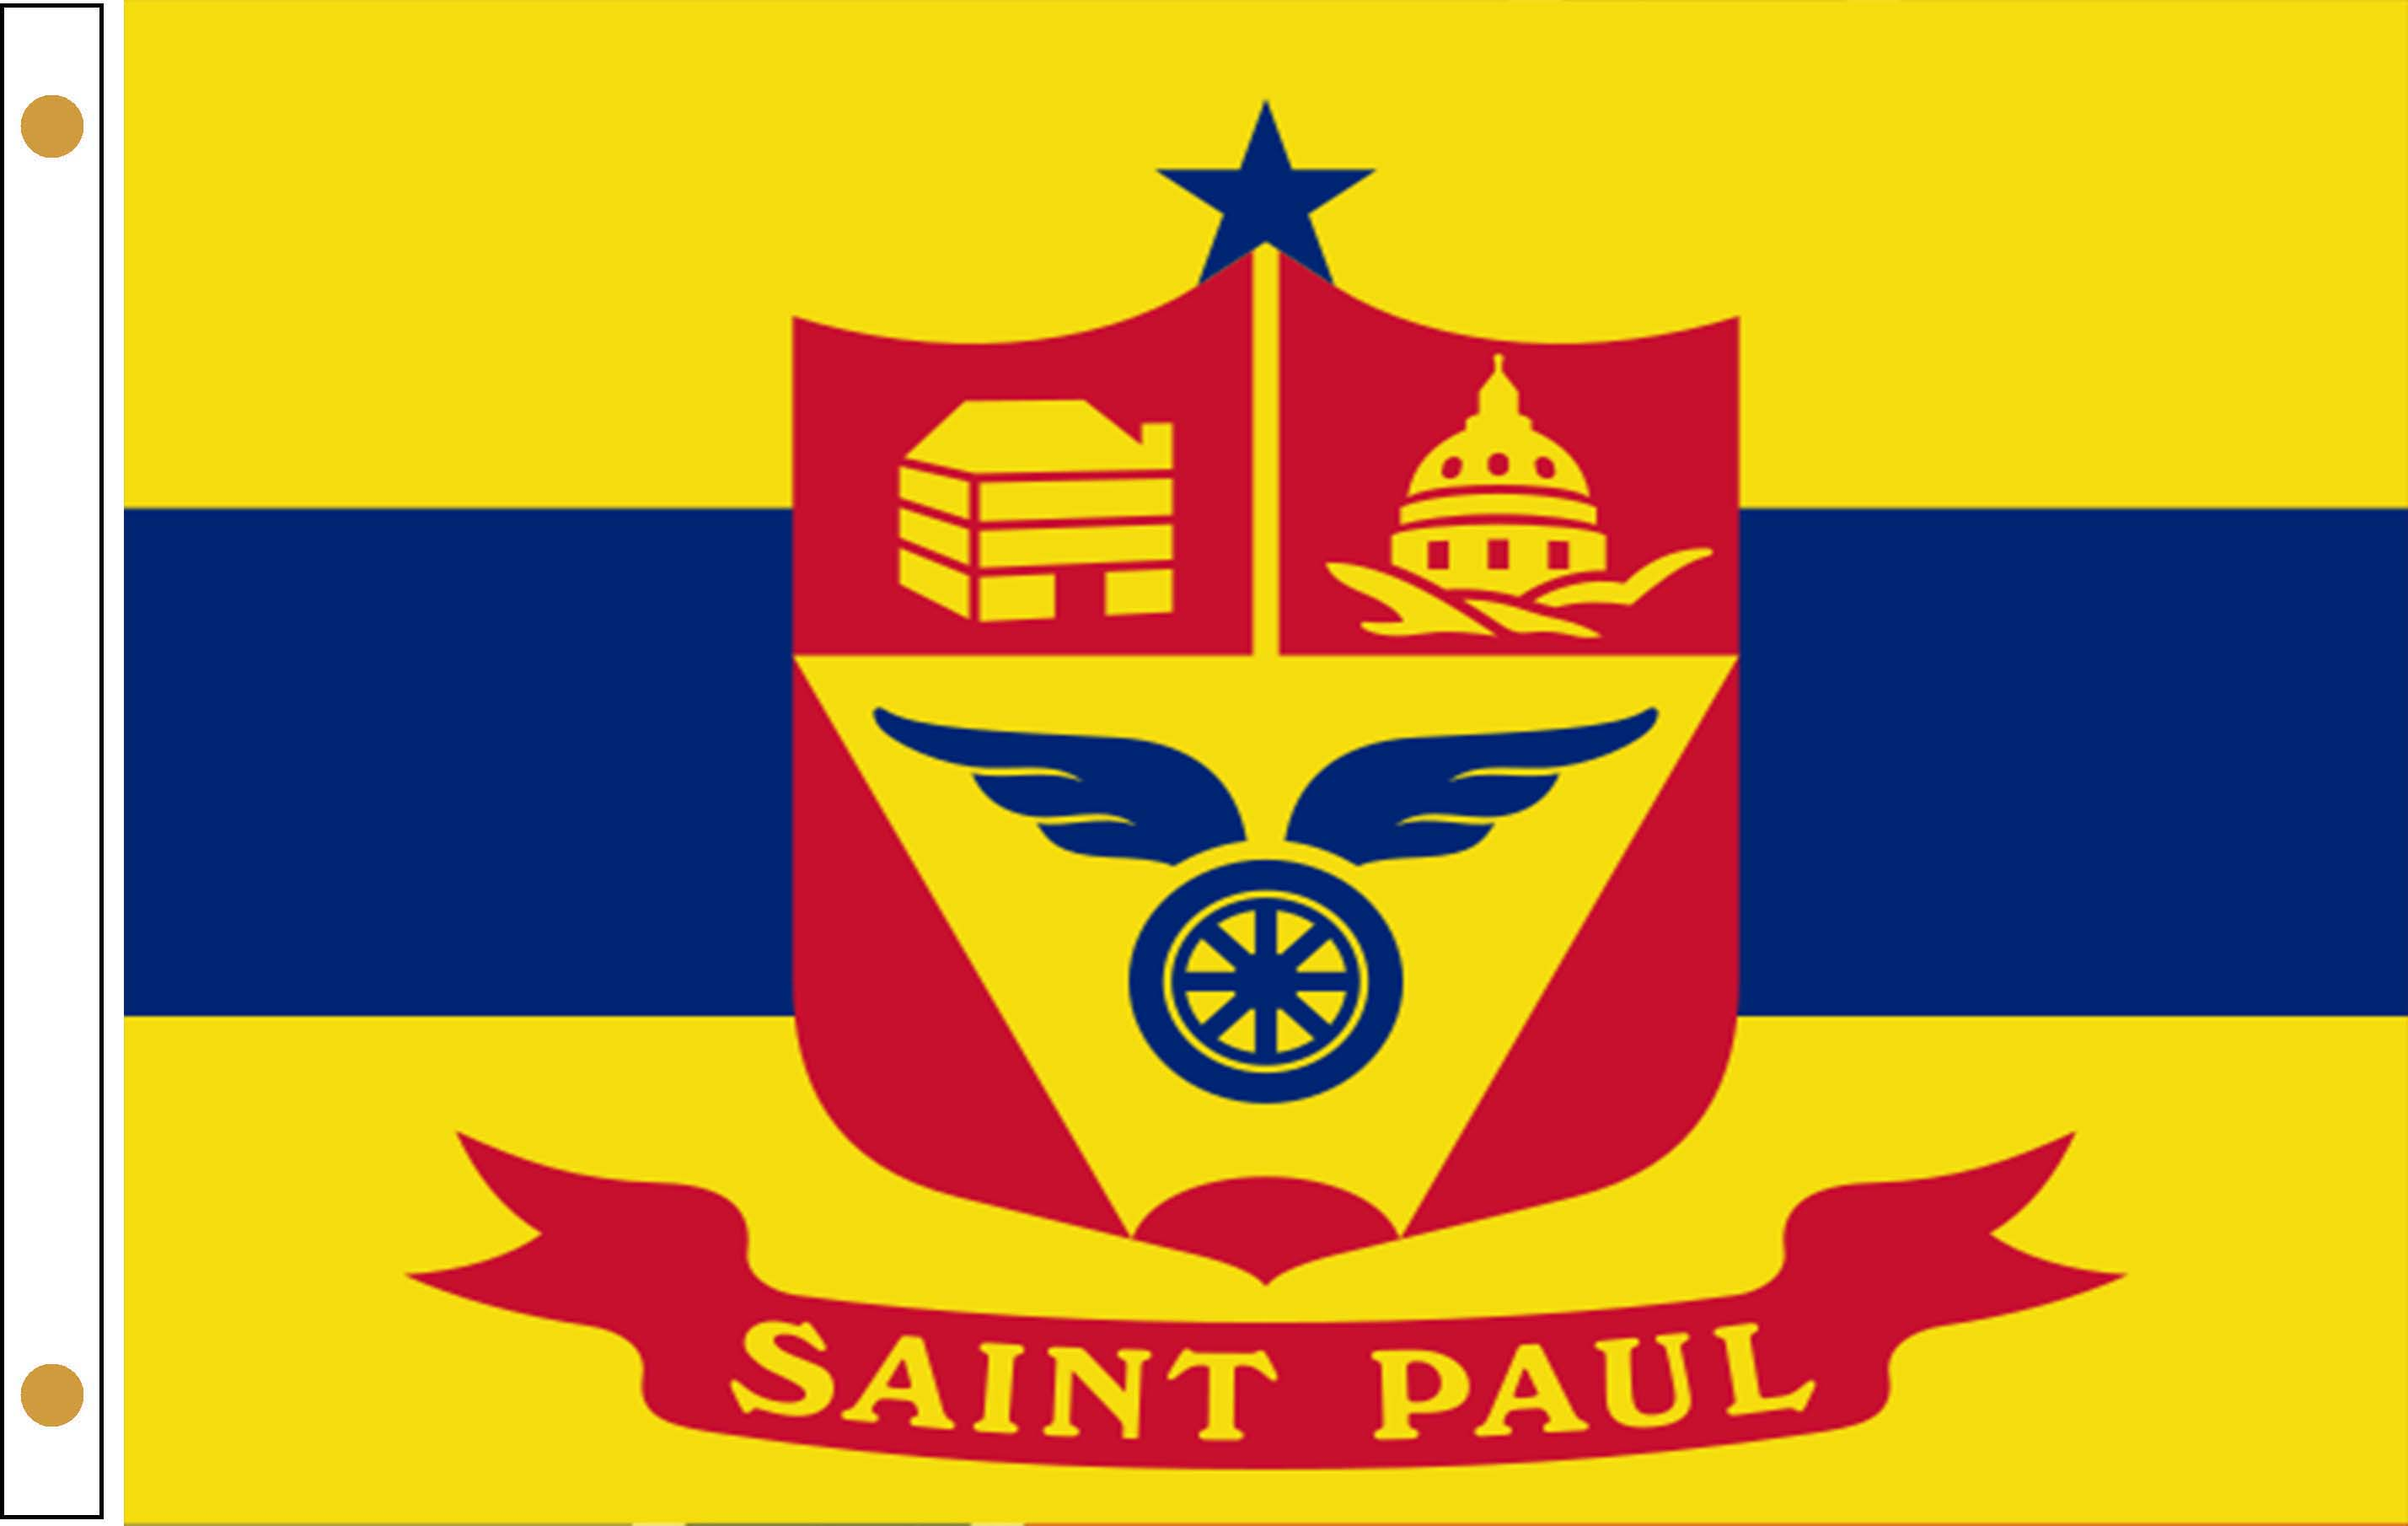 St Paul Minnesota Flags